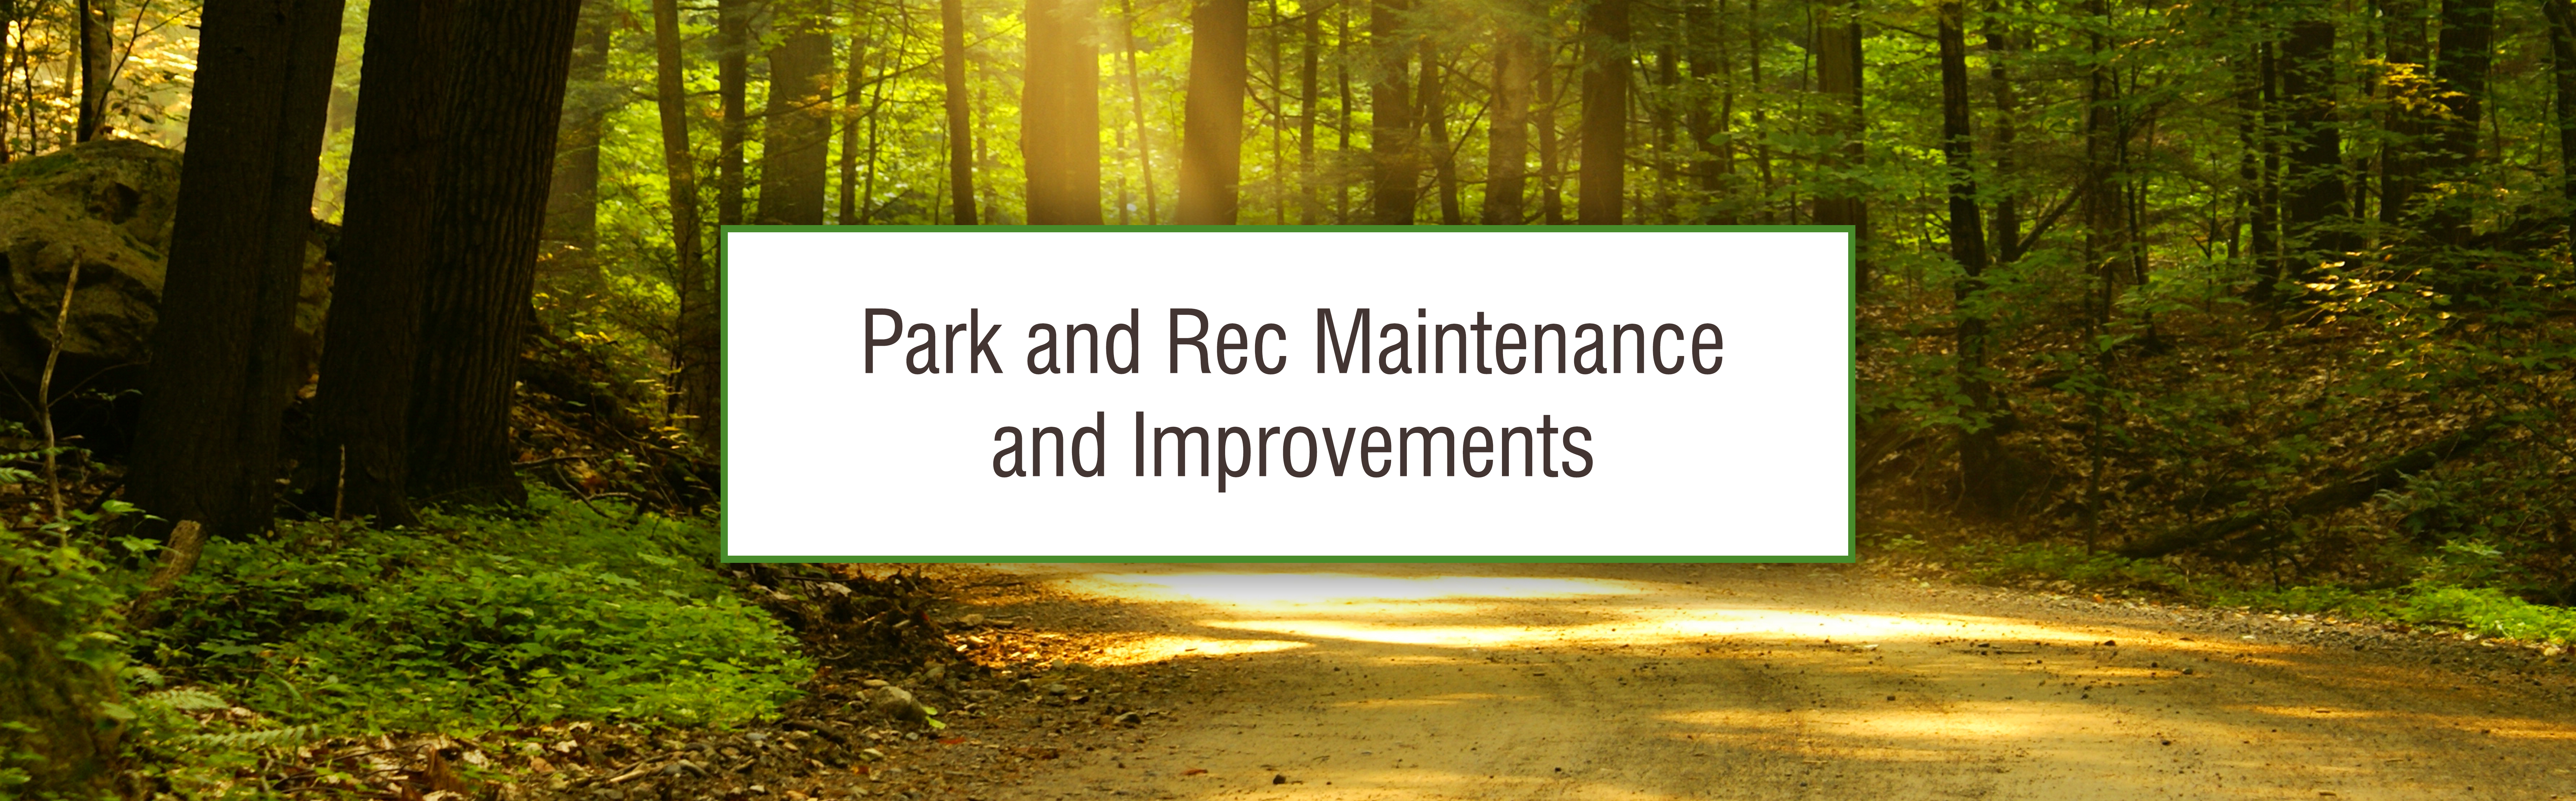 Park and Maint